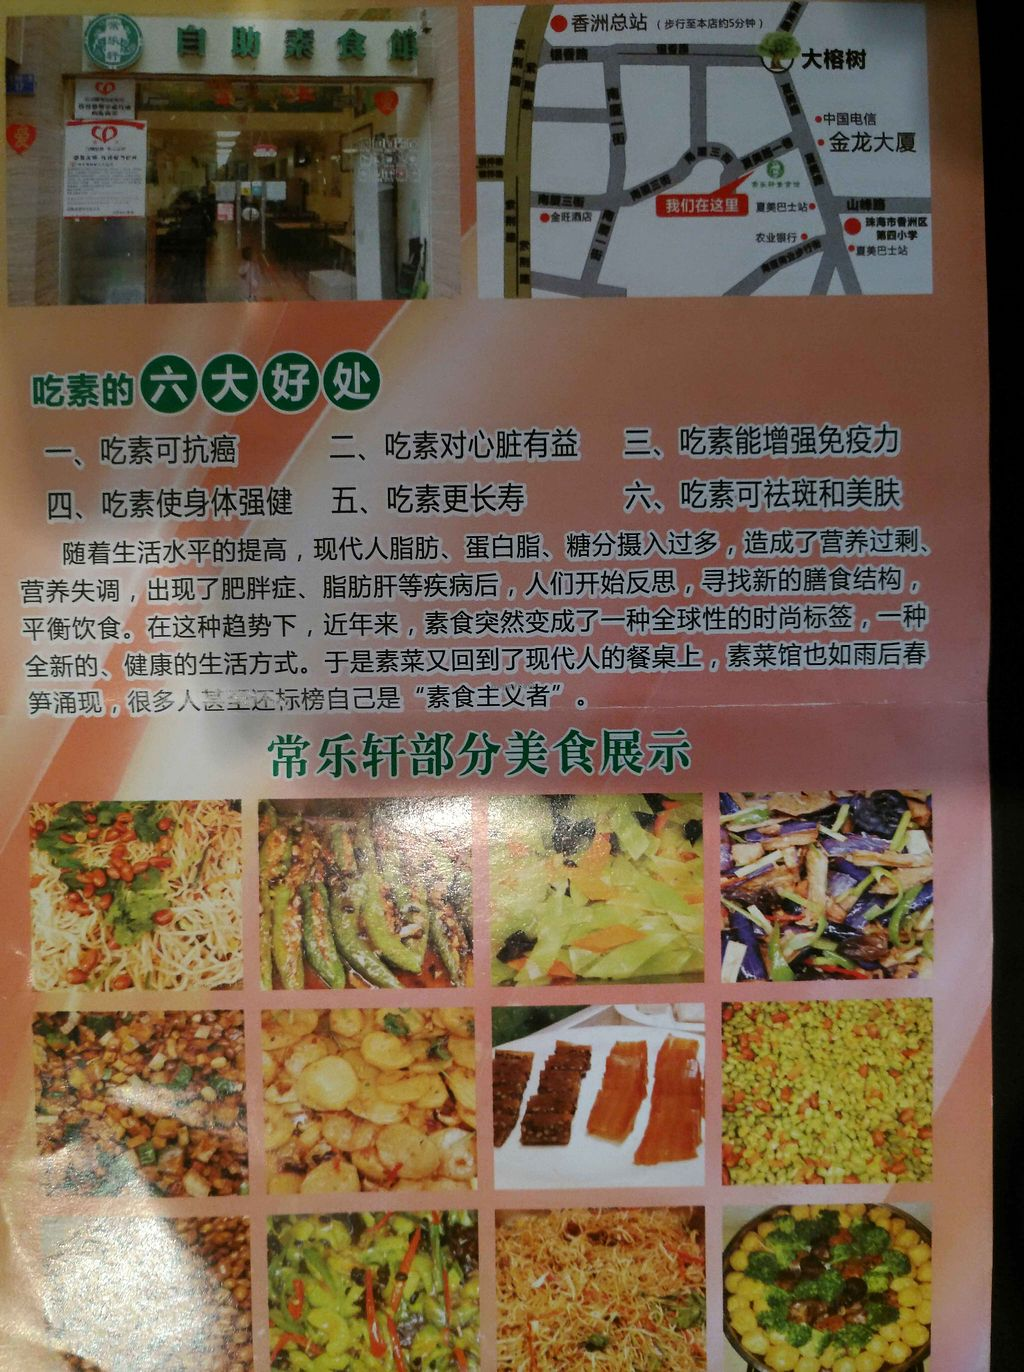 """Photo of ChangLe Xuan Vegetarian Buffet  by <a href=""""/members/profile/mcquinten2"""">mcquinten2</a> <br/>leaflet <br/> November 21, 2017  - <a href='/contact/abuse/image/105124/327776'>Report</a>"""